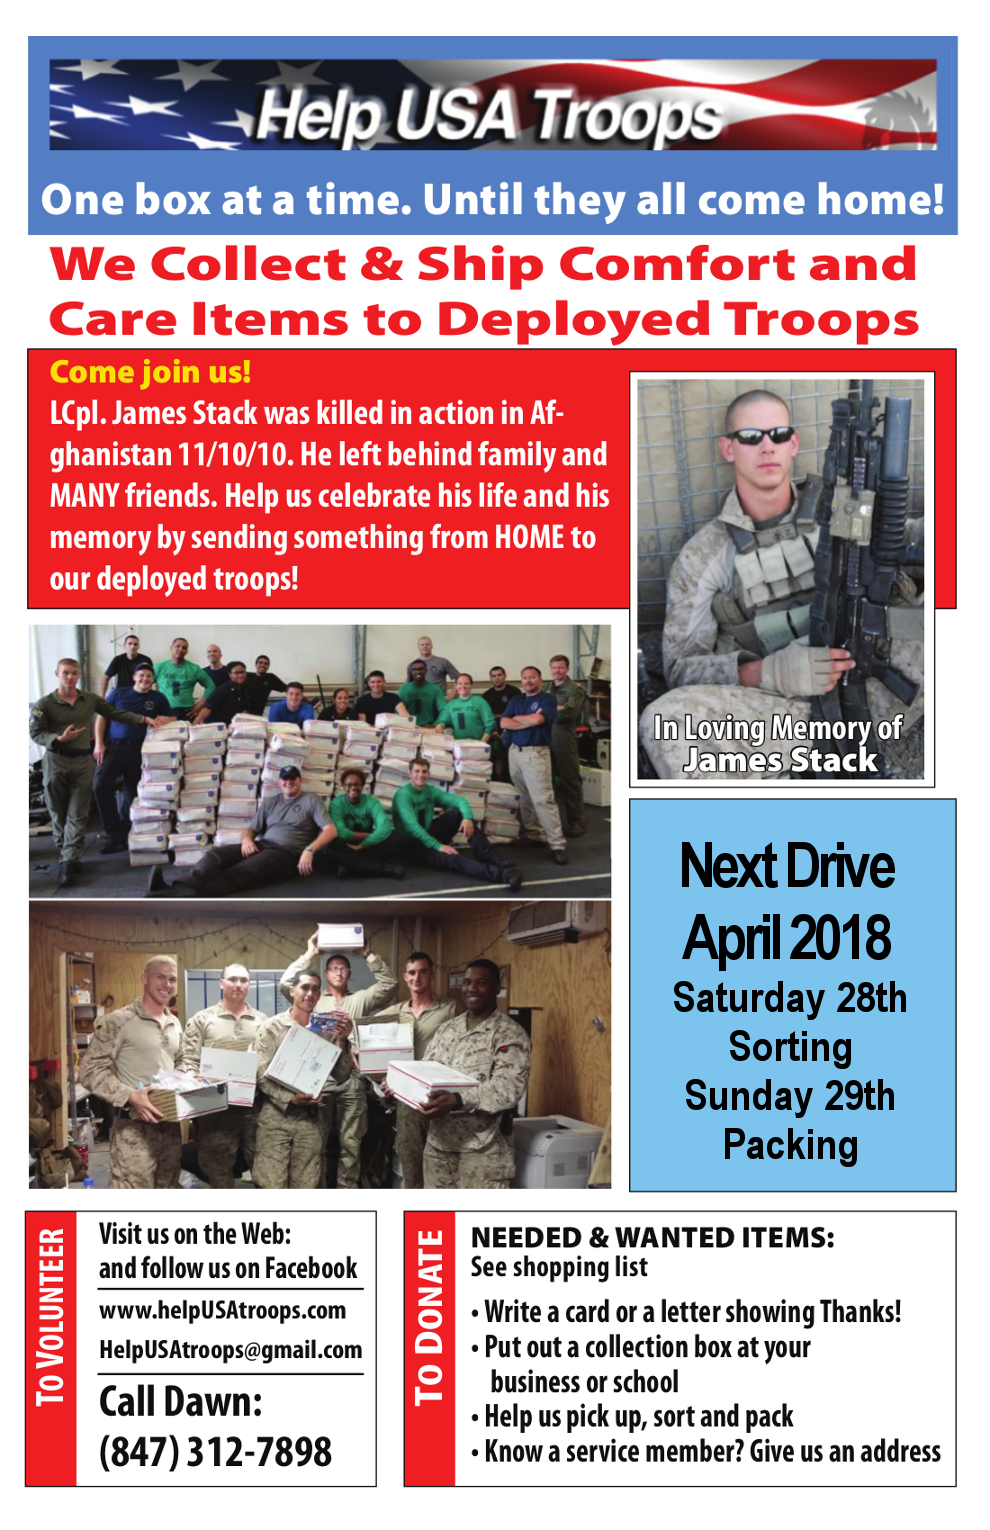 Supporting Our Troops One Box at a Time!